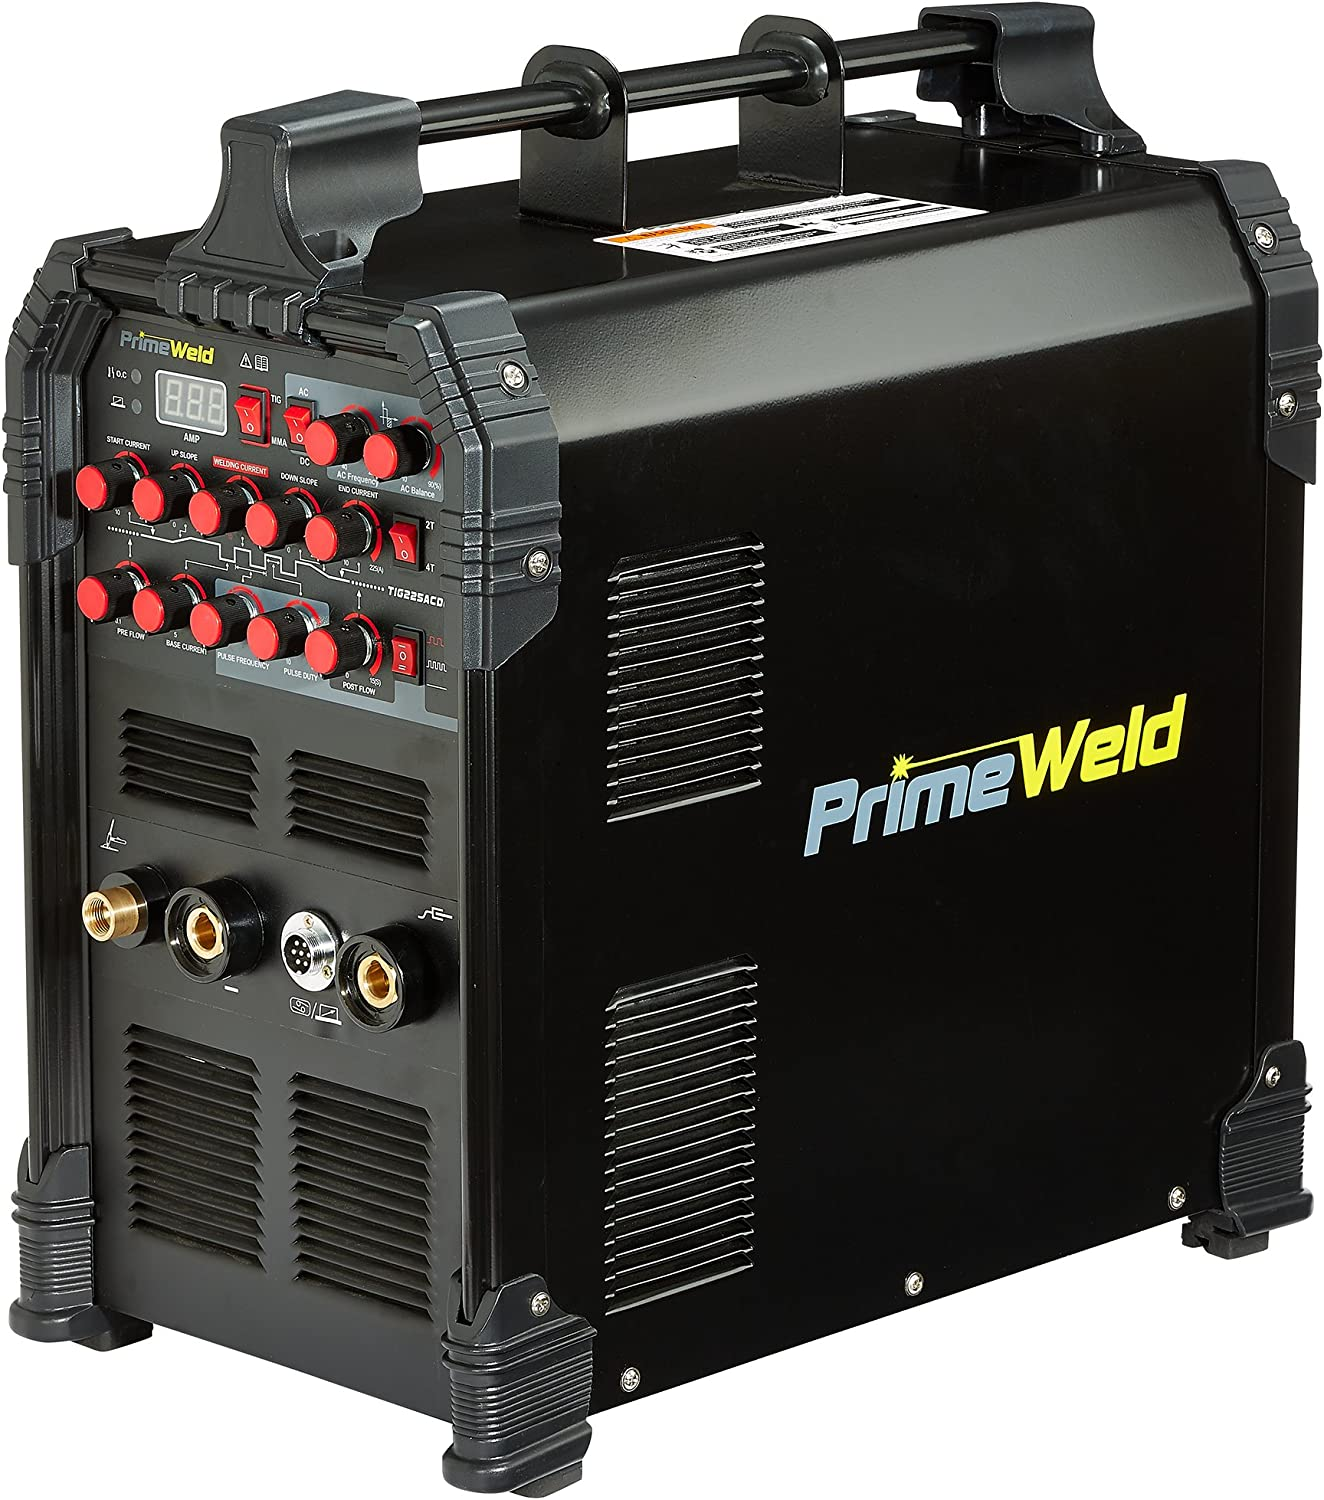 PRIMEWELD Welding Machine